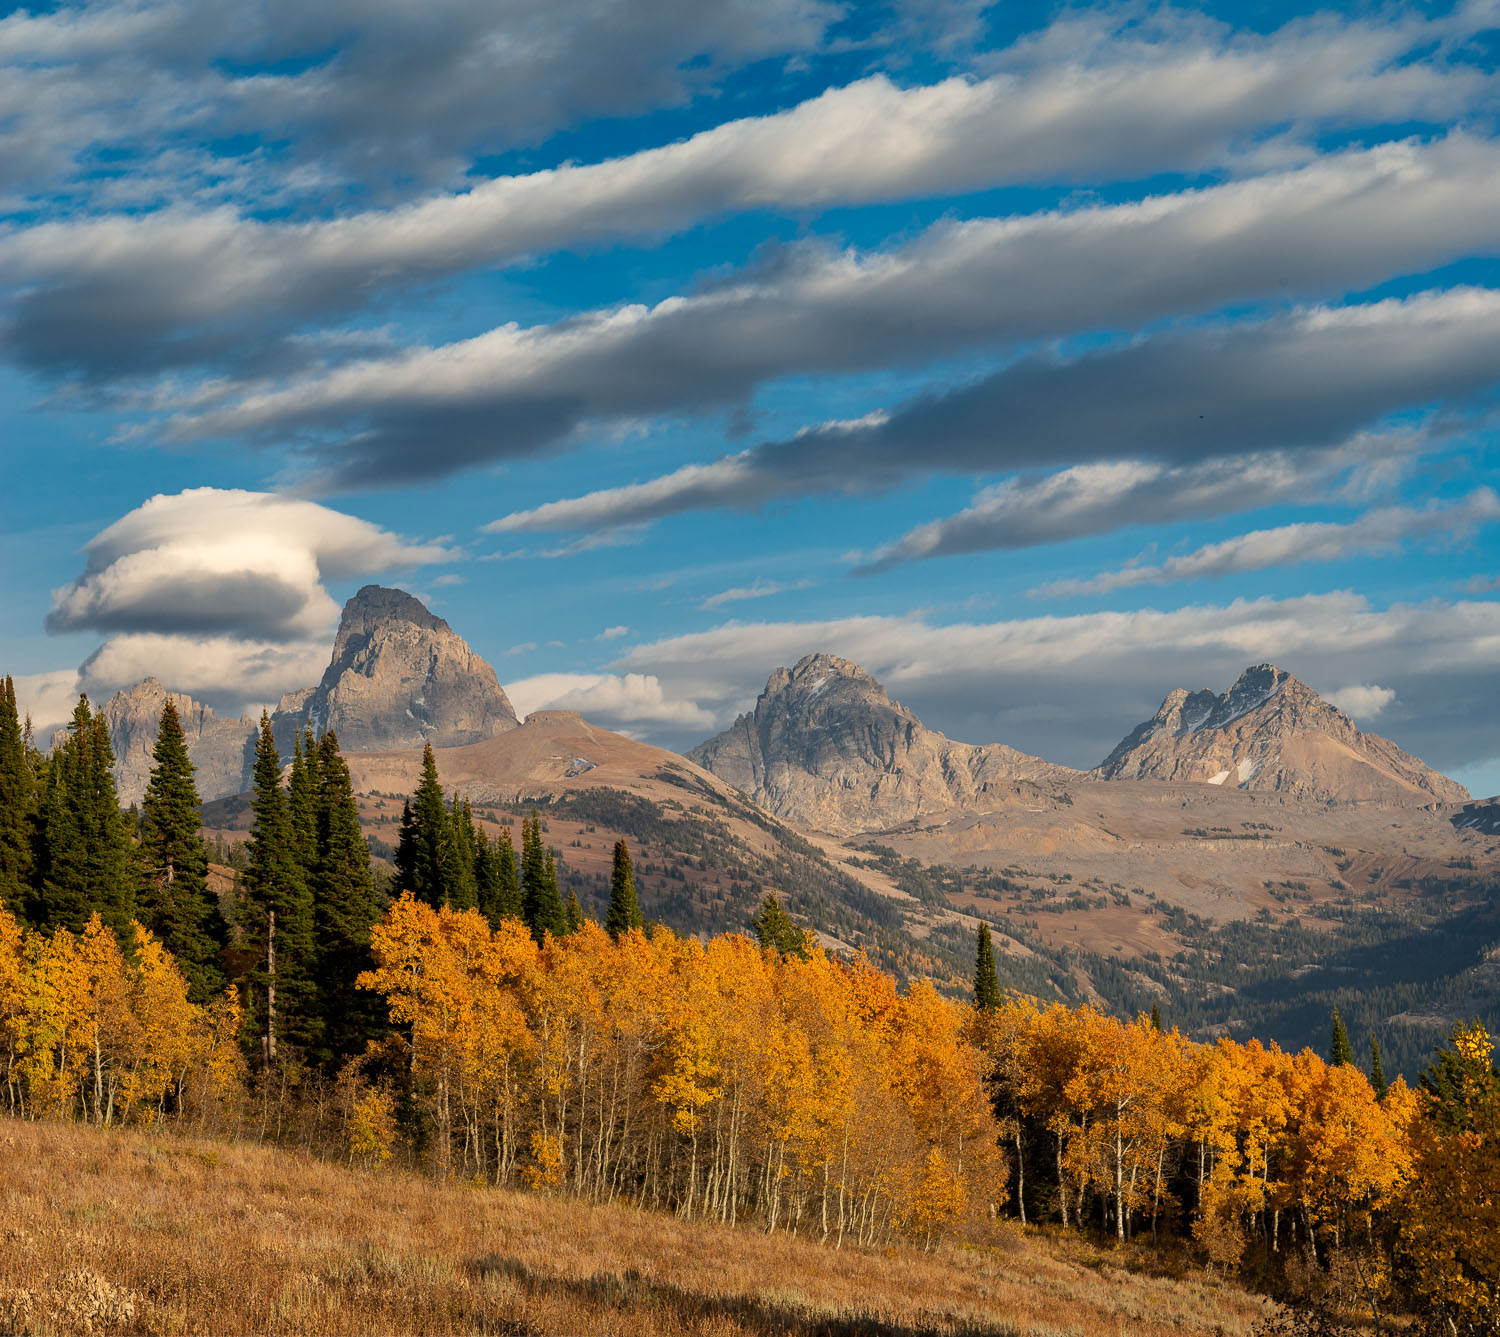 Streaked Clouds and Golden Aspens over the Teton Mountains near